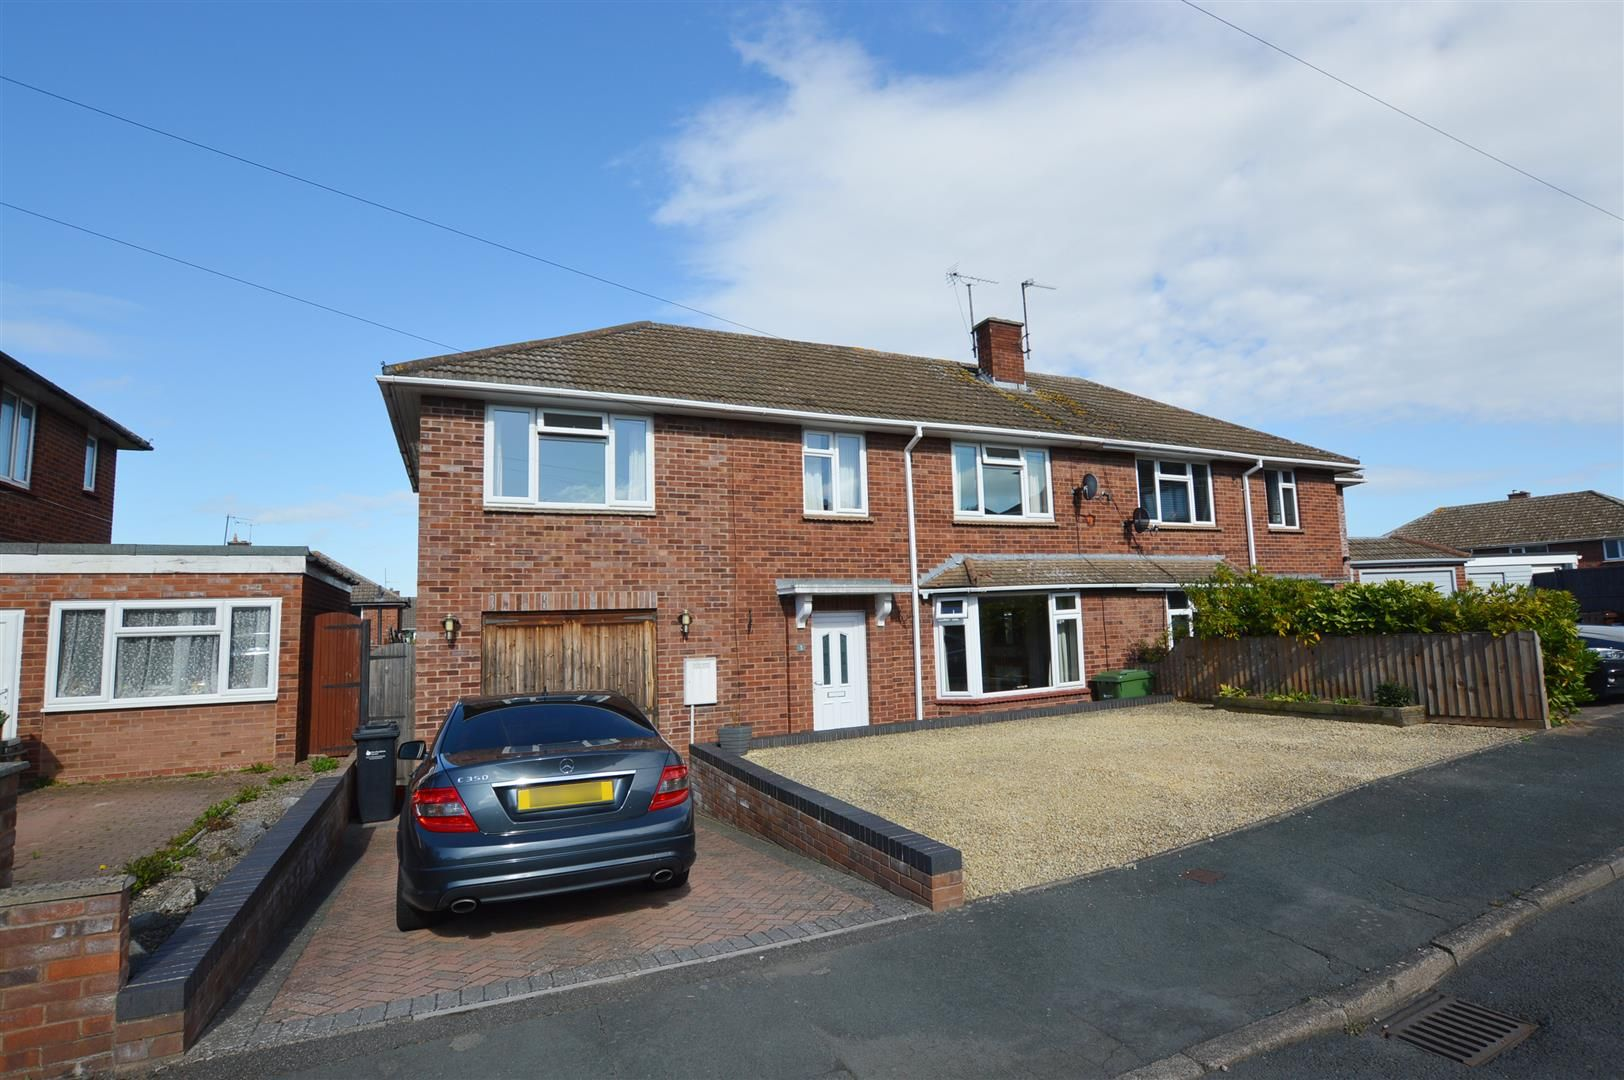 4 bed semi-detached for sale in Hereford  - Property Image 1